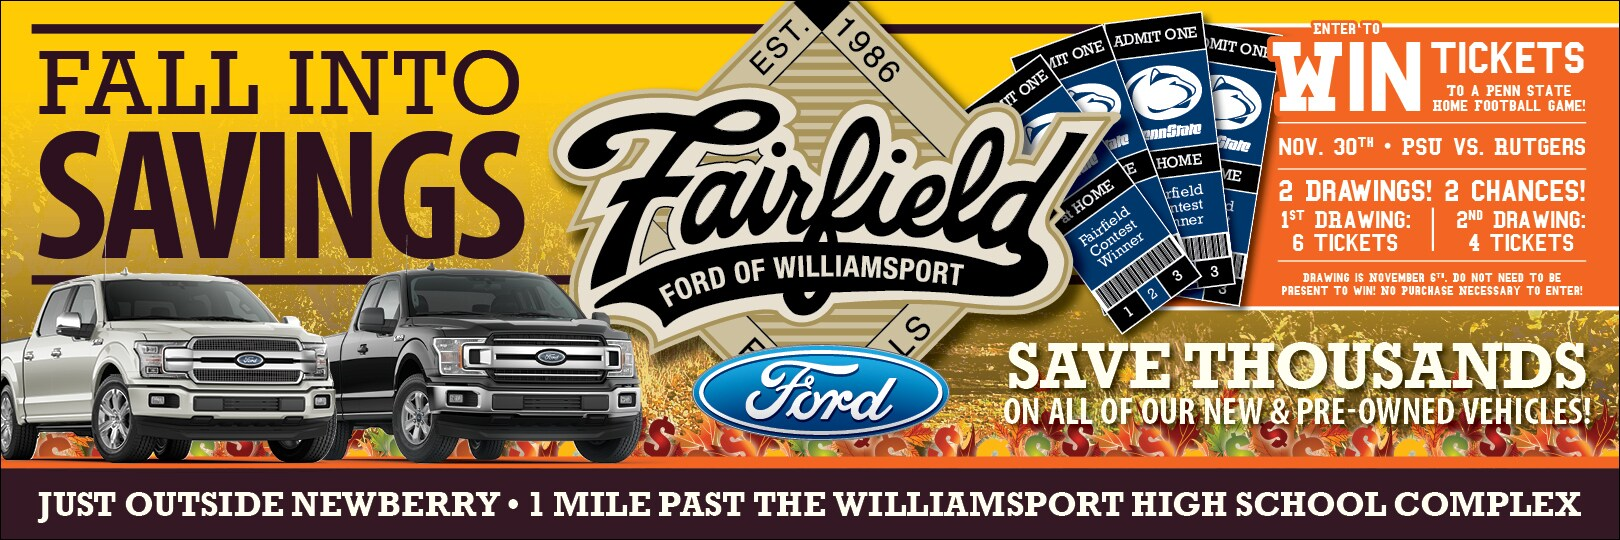 Fairfield Ford Williamsport Pa >> Ford Dealership In Williamsport Pa Fairfield Ford Of